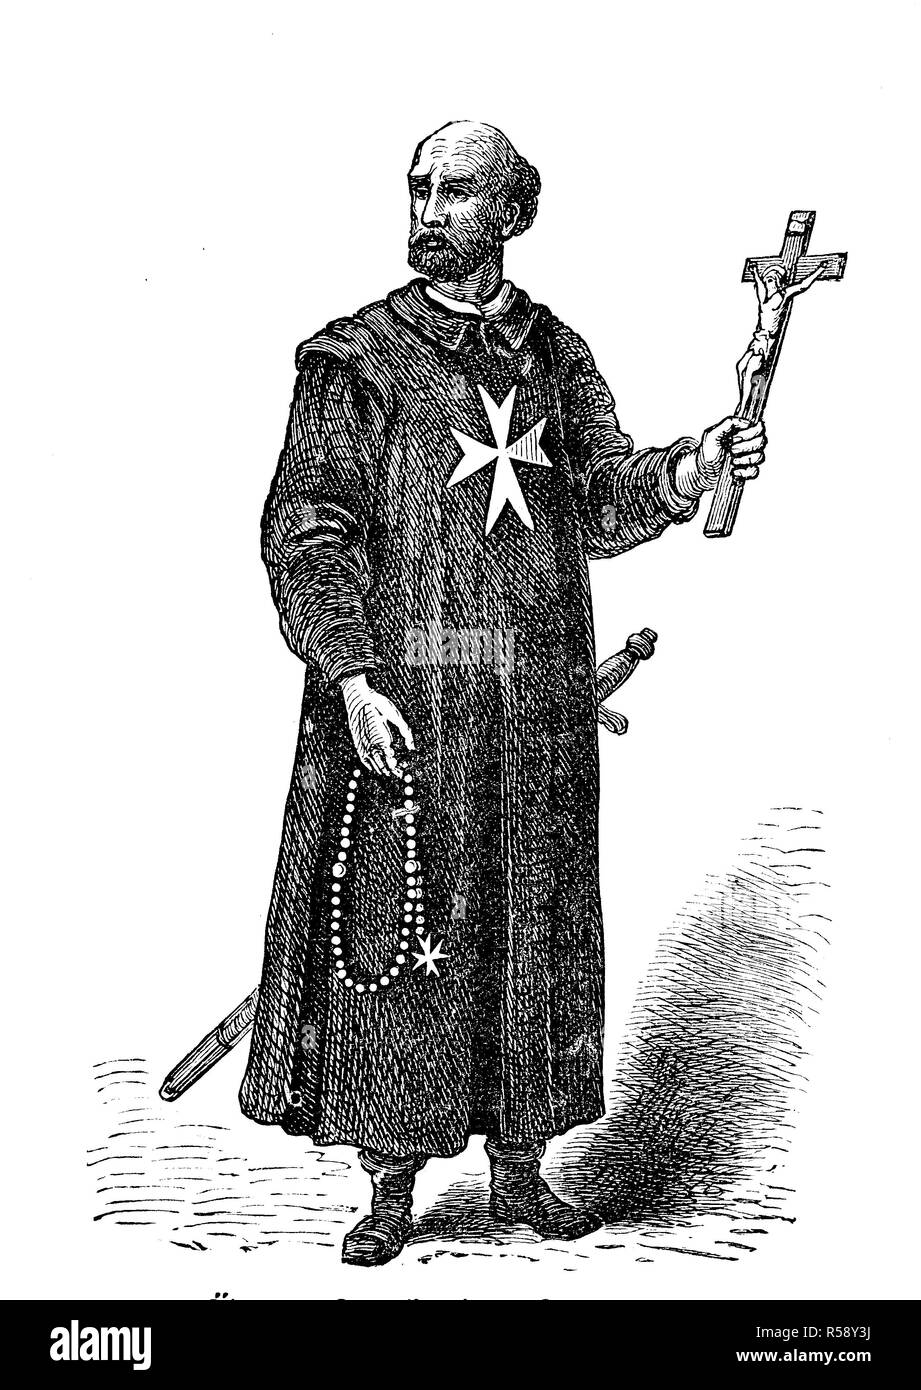 Digital improved reproduction, older costume of the members of the Order of Saint John, ältere Tracht der Johanniter, Johanniterorden, original print from th 19th century - Stock Image